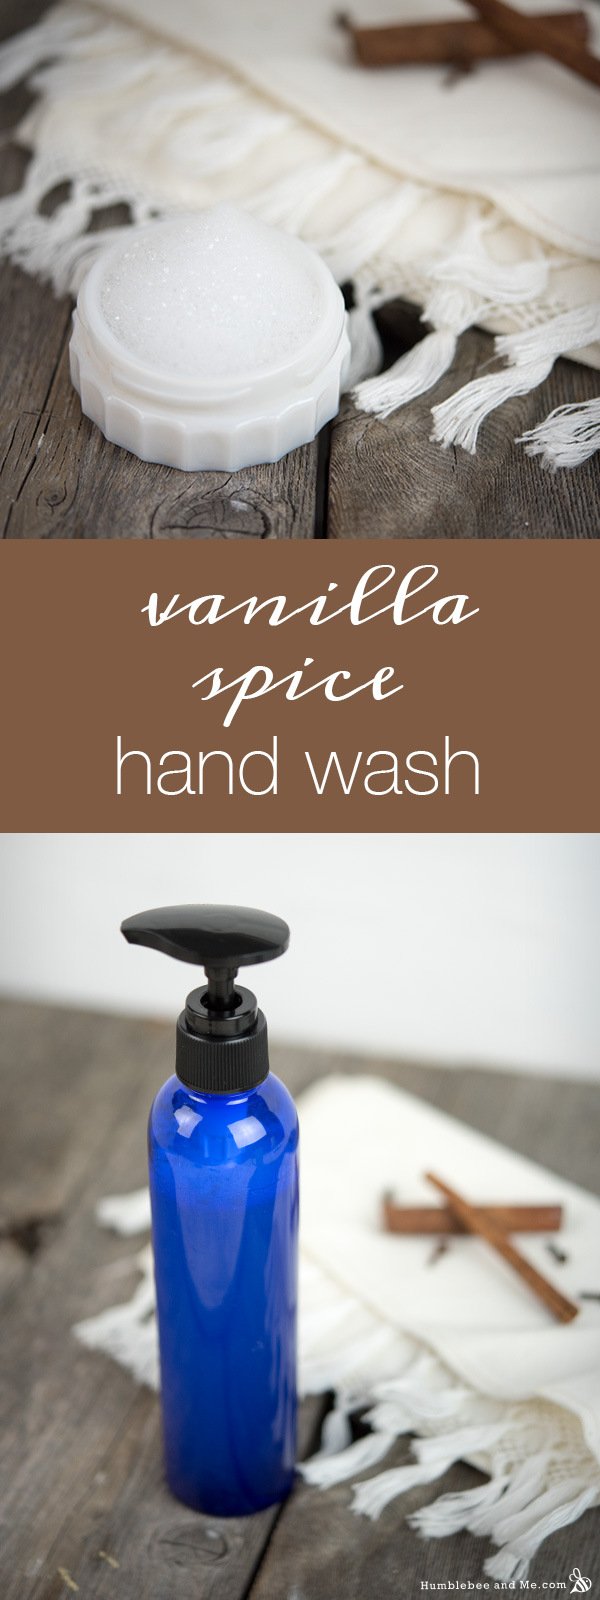 How to Make Vanilla Spice Hand Wash